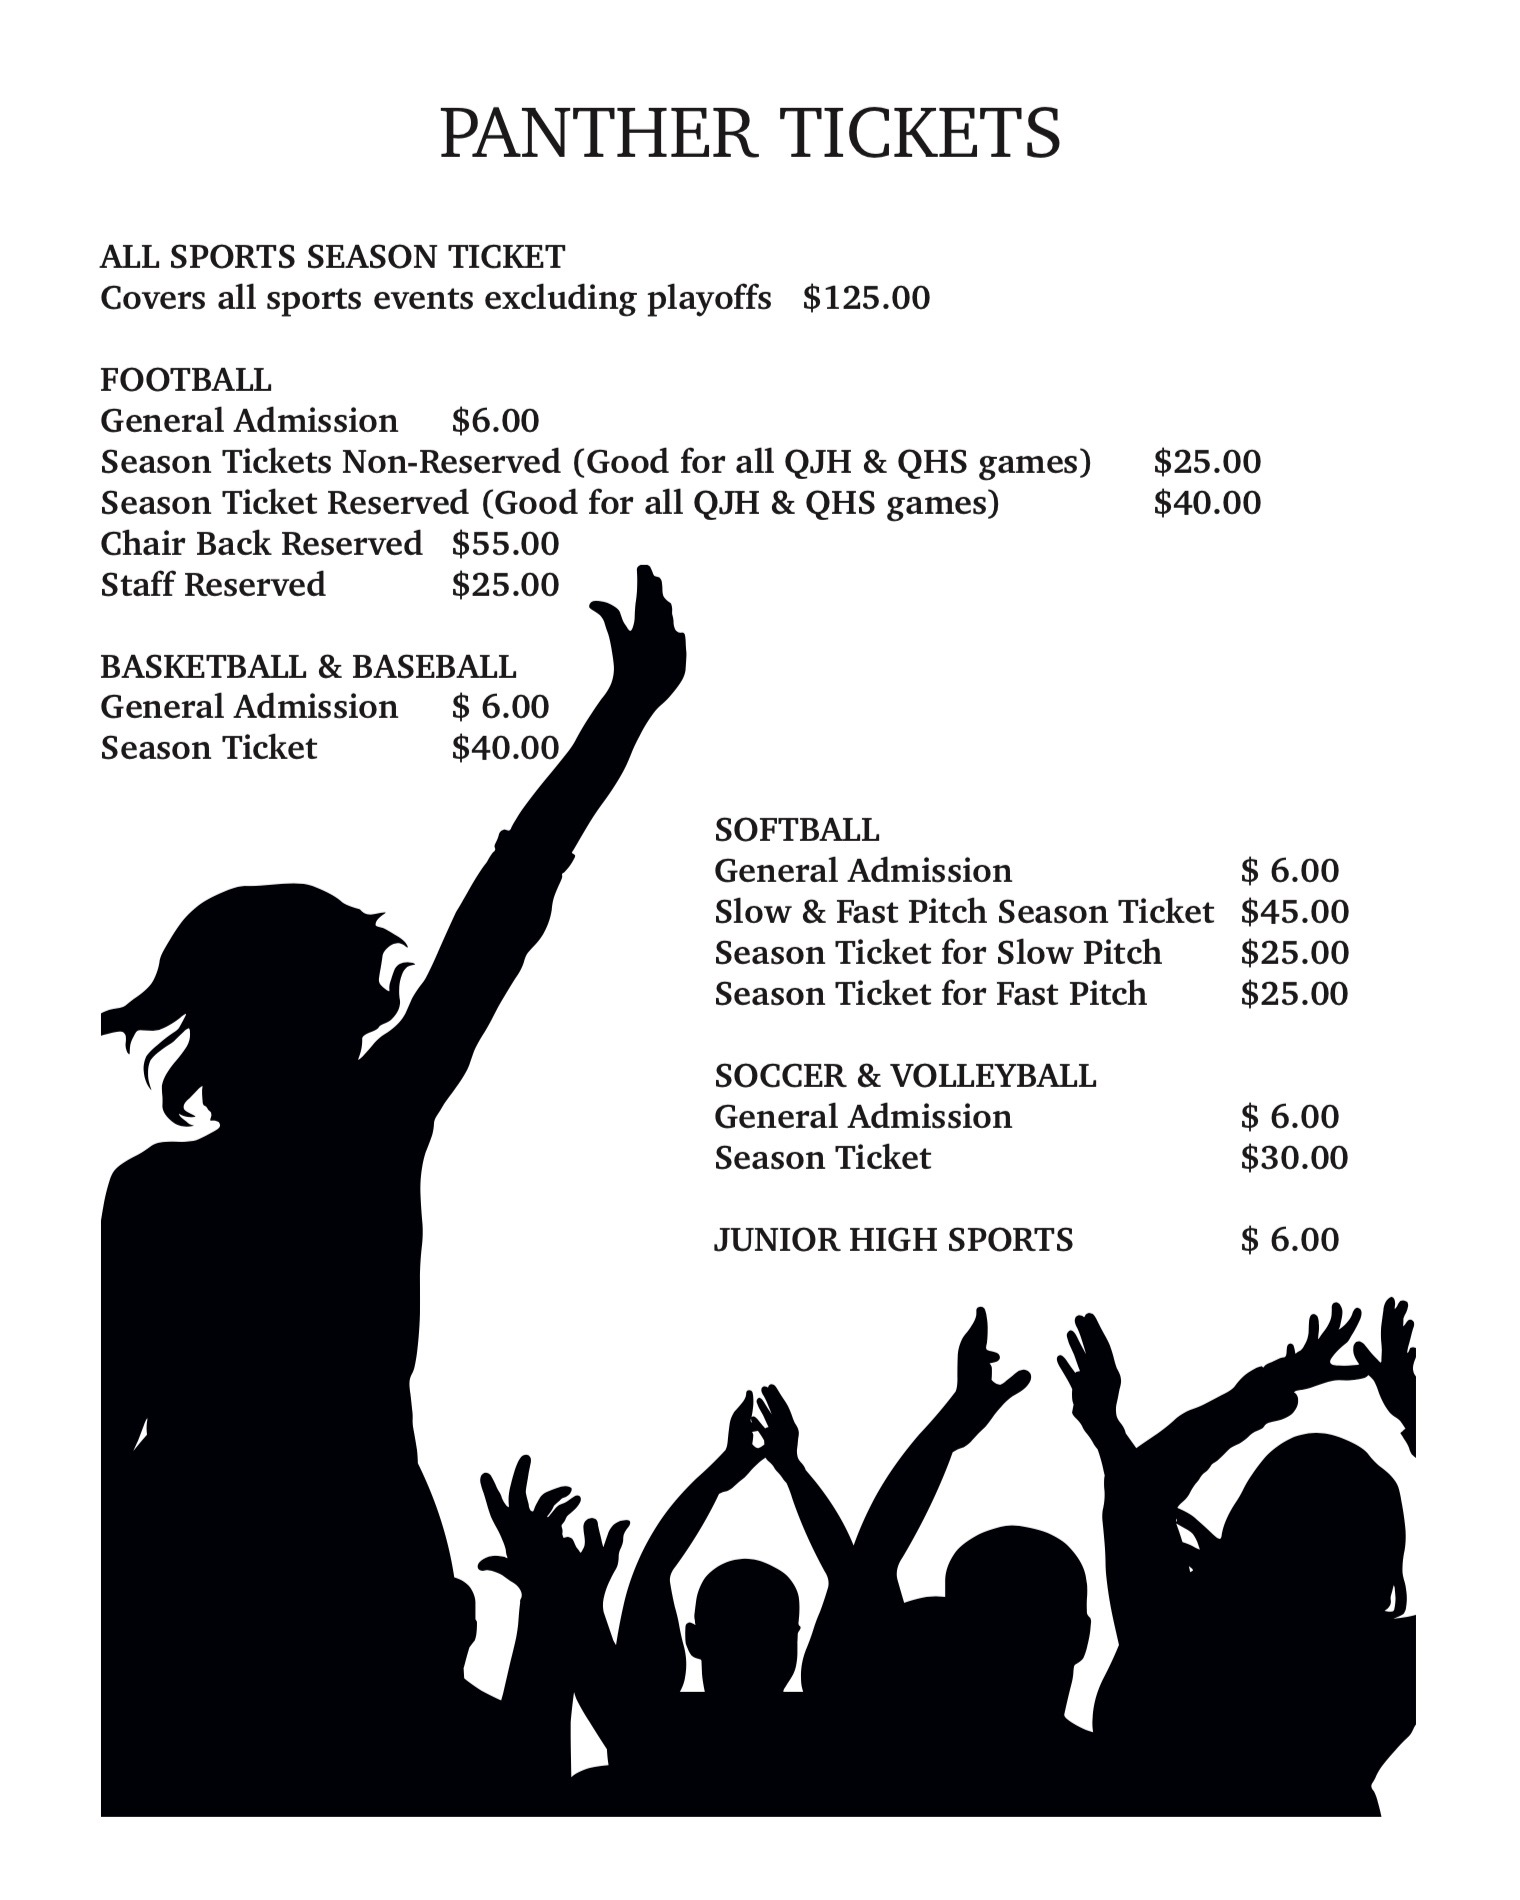 Flyer containing Panther ticket prices.